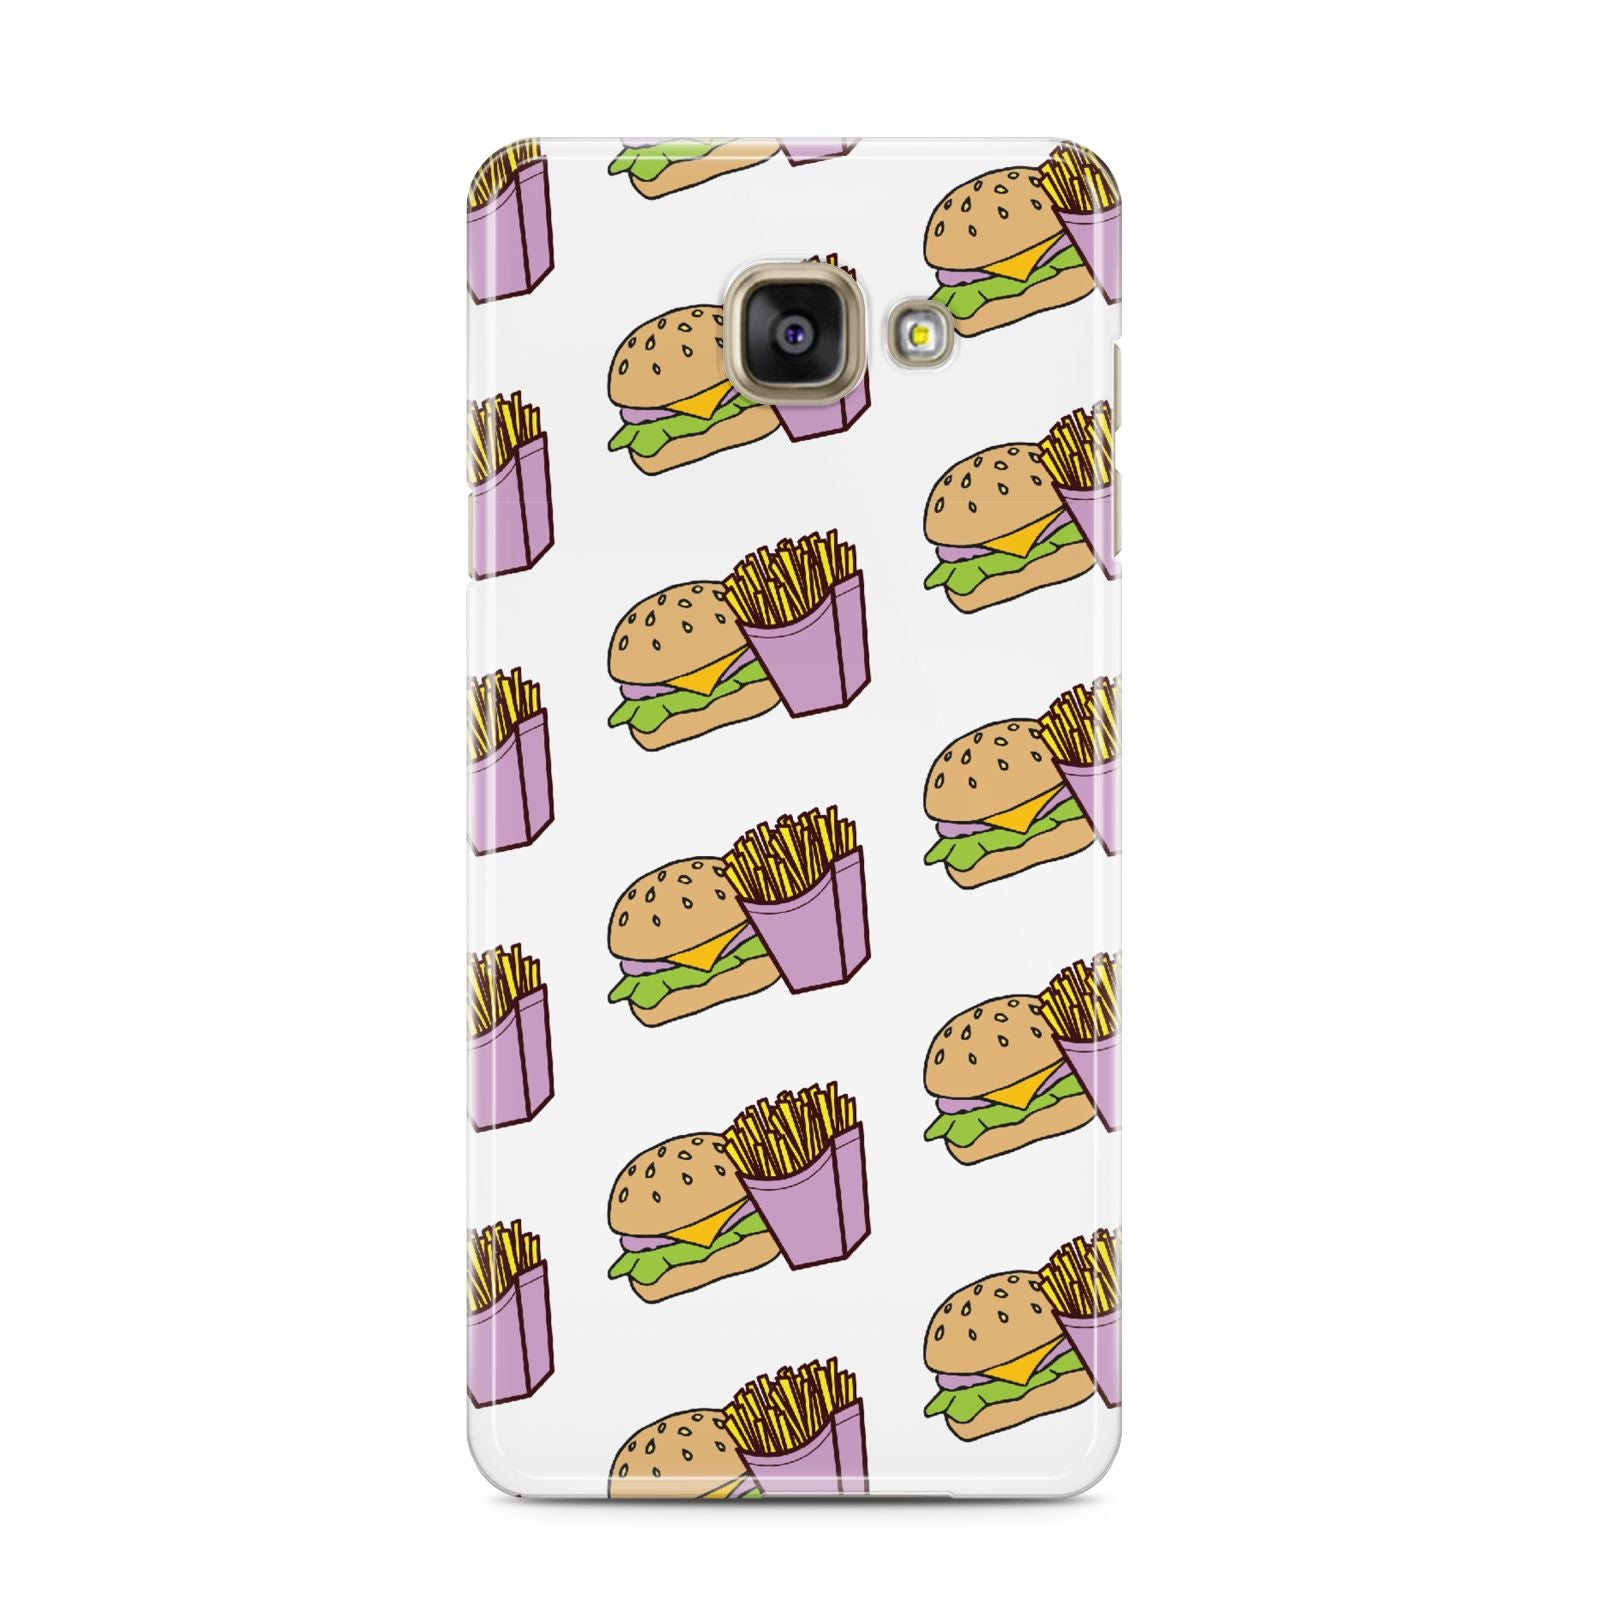 Burger Fries Fast Food Samsung Galaxy A3 2016 Case on gold phone